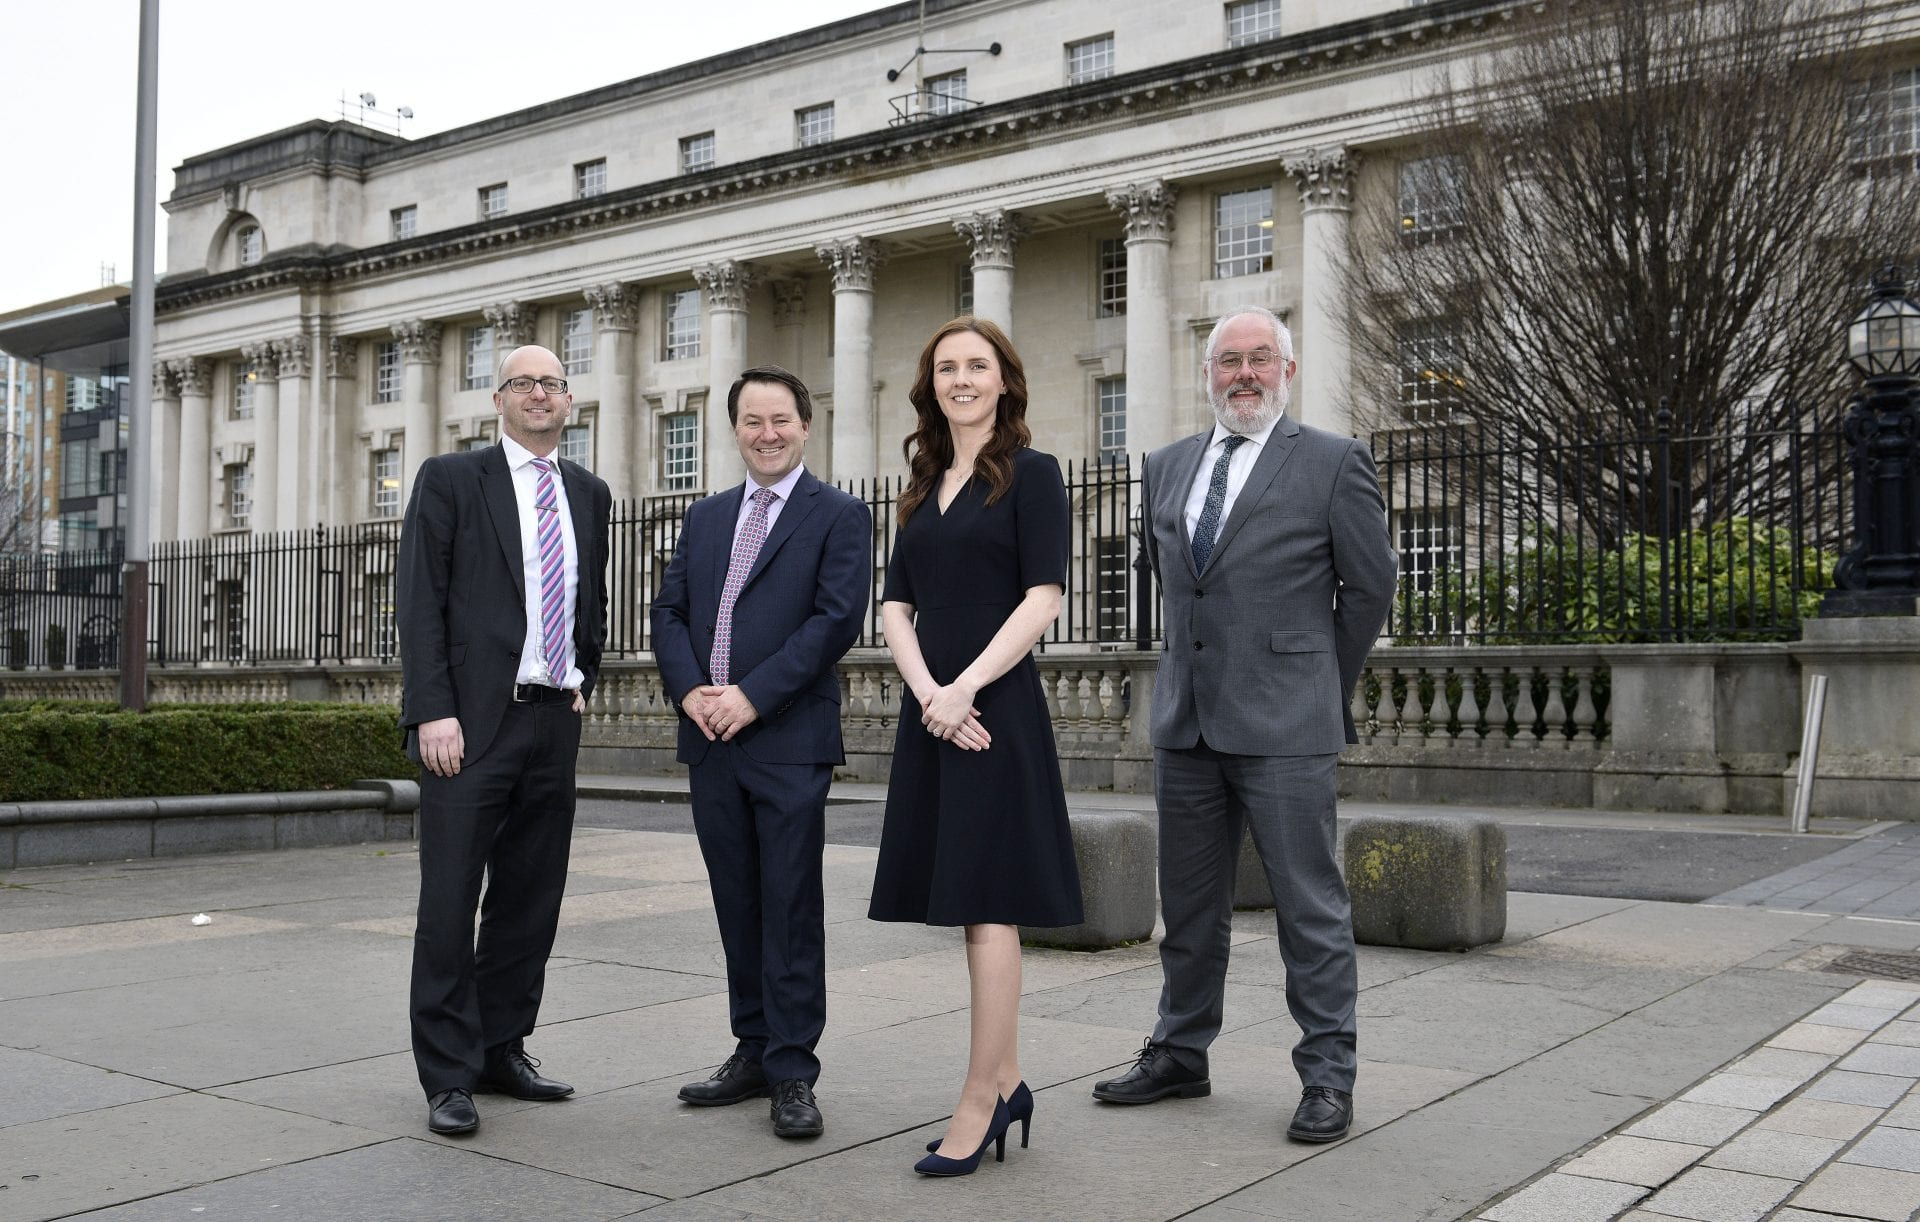 Grant Thornton Forensic and Investigation team